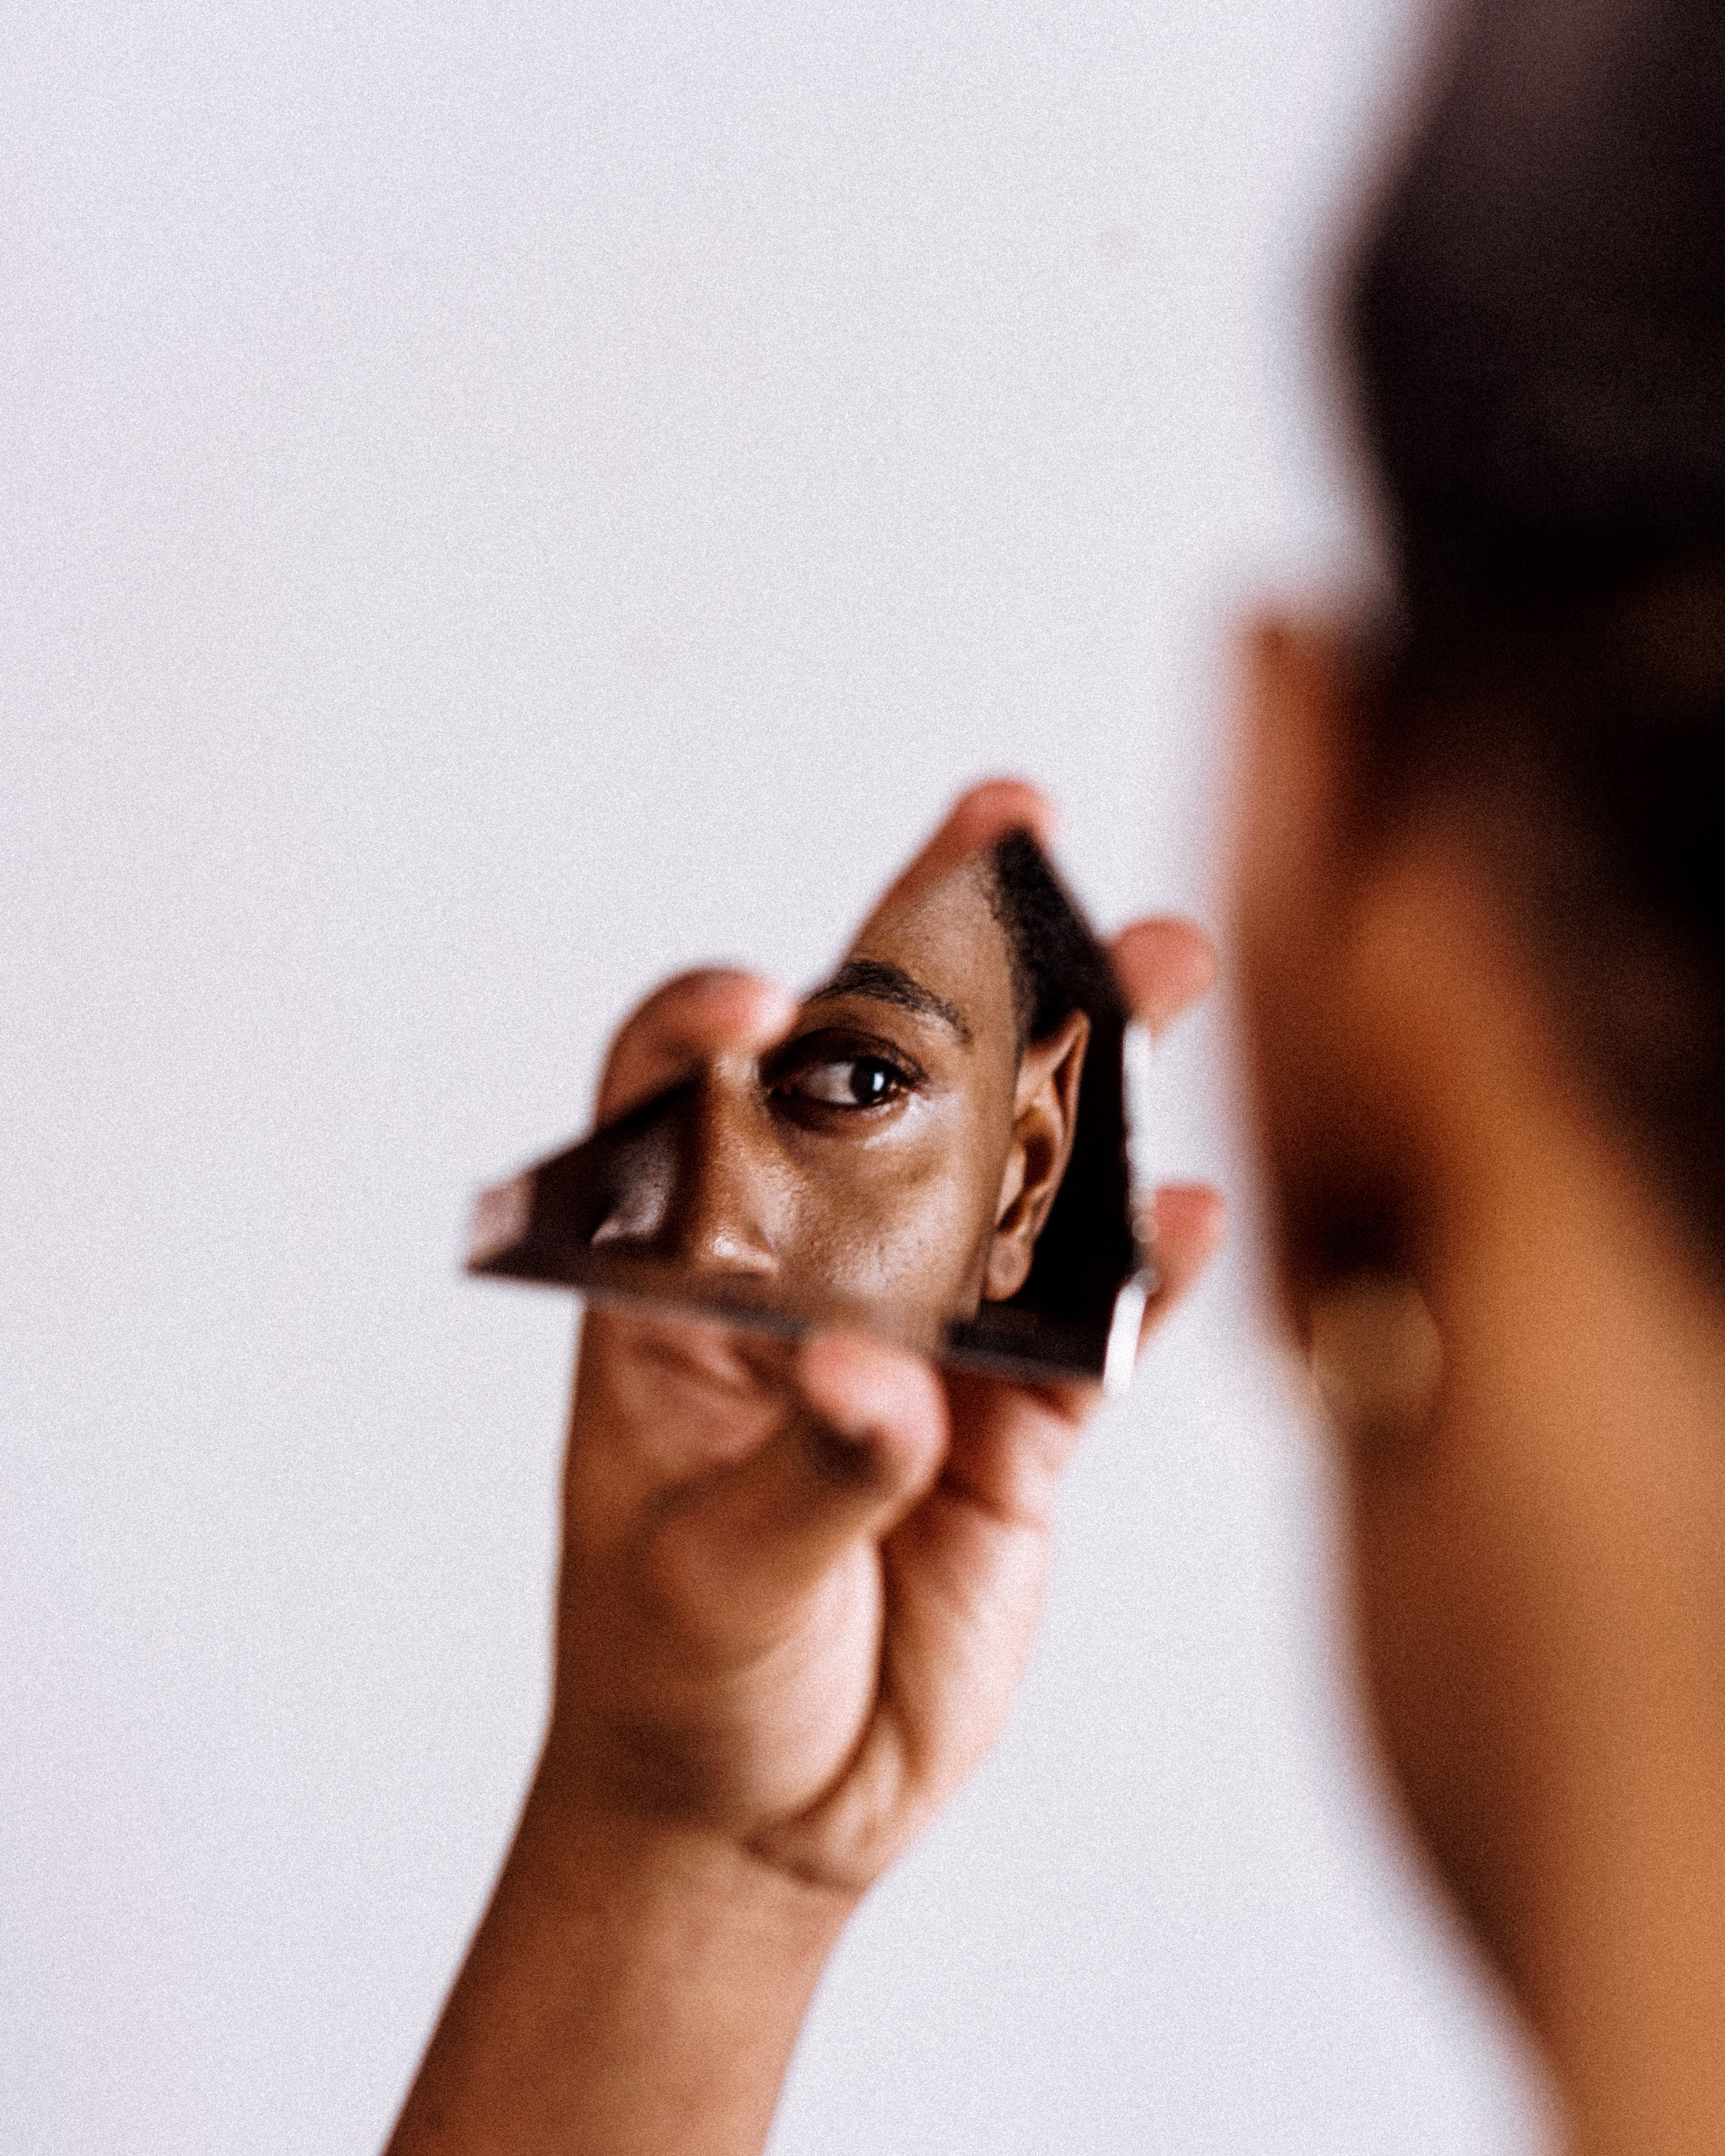 A black person holds a jagged piece of mirror, looking into it, as the camera captures the reflection oftheir eye.